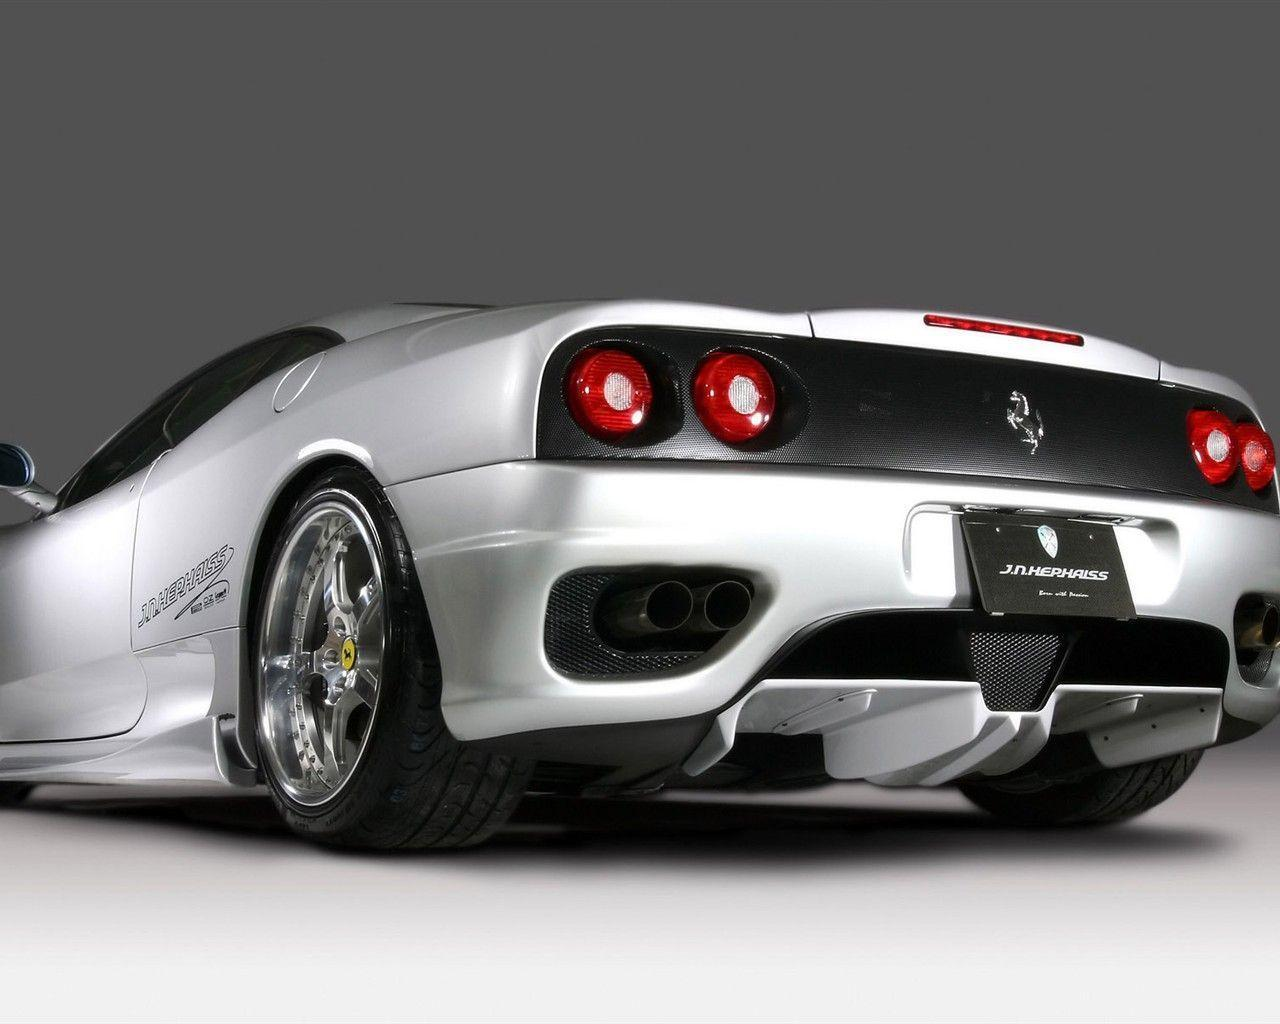 White Ferrari F430 Wallpapers 4879 Hd Wallpapers in Cars